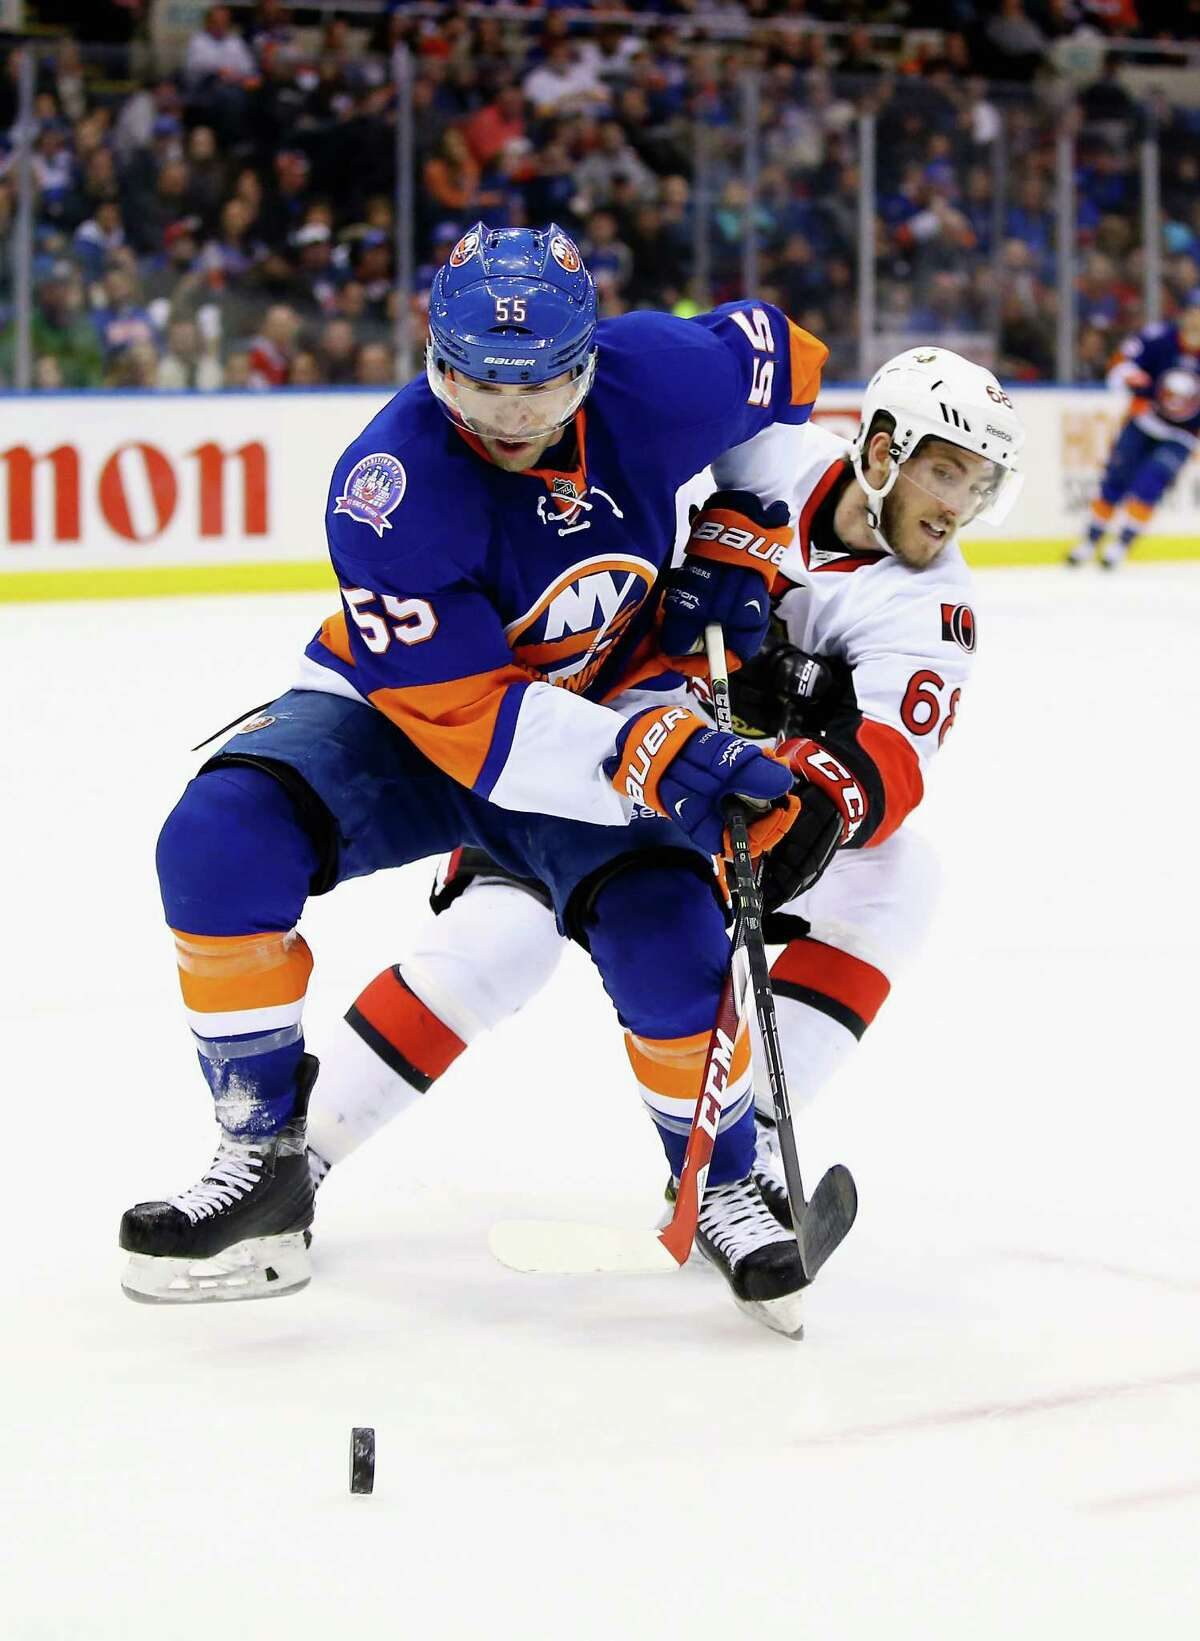 UNIONDALE, NY - MARCH 13: Johnny Boychuk #55 of the New York Islanders and Mike Hoffman #68 of the Ottawa Senators battle for the puck during their game at the Nassau Veterans Memorial Coliseum on March 13, 2015 in Uniondale, New York. (Photo by Al Bello/Getty Images) ORG XMIT: 507050803